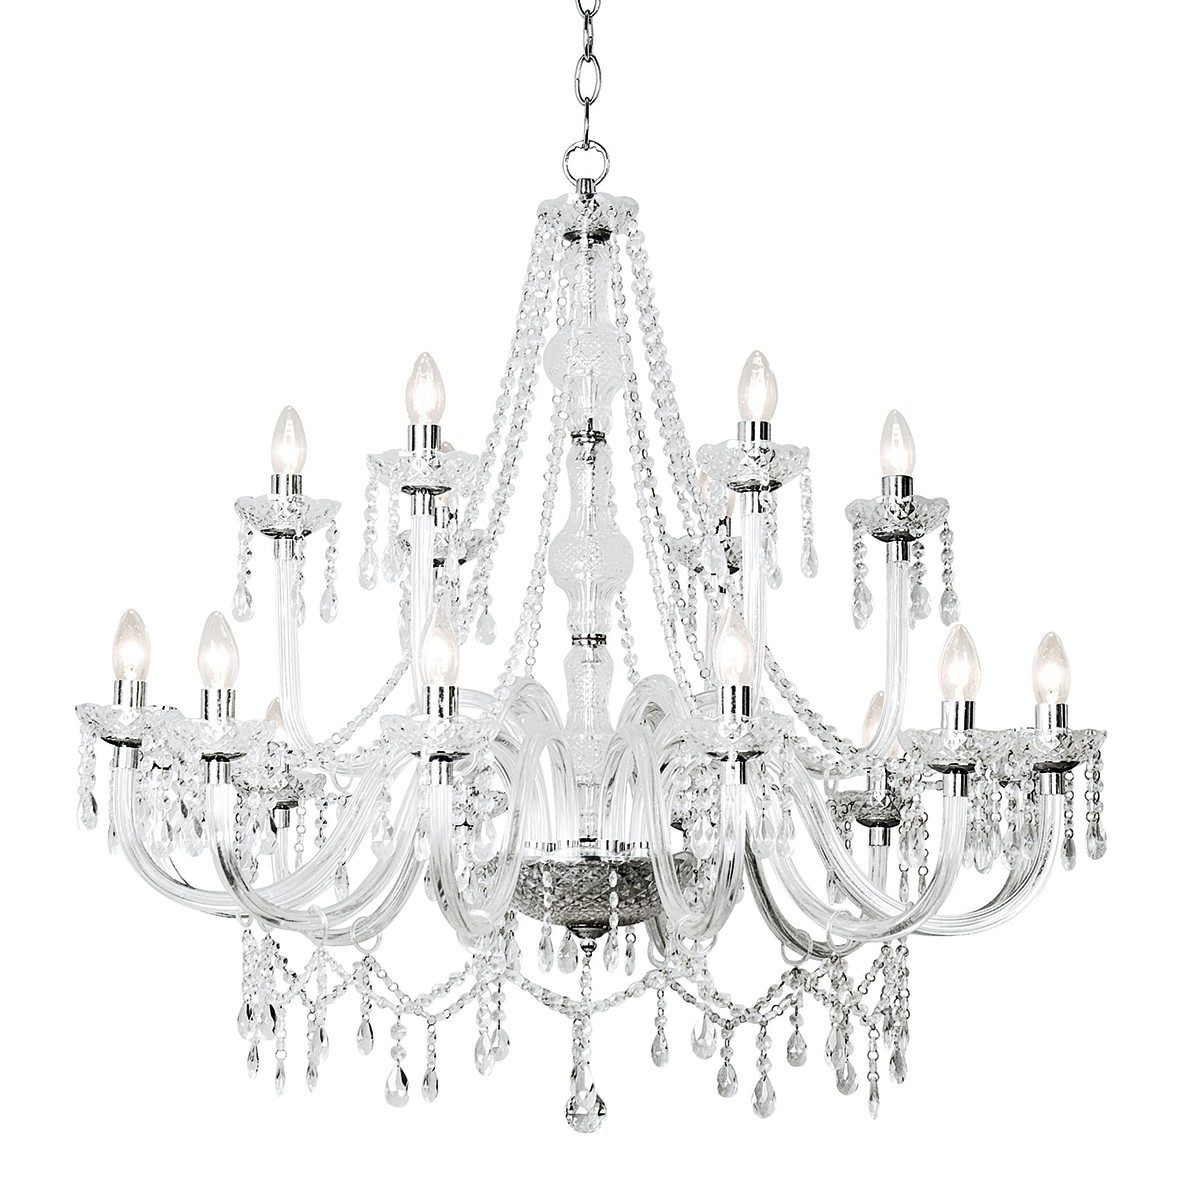 Katie 18 Light Chandelier Dual Mount Acrylic Glass Shade Sold Separately Throughout Preferred Acrylic Chandelier Lighting (View 11 of 15)